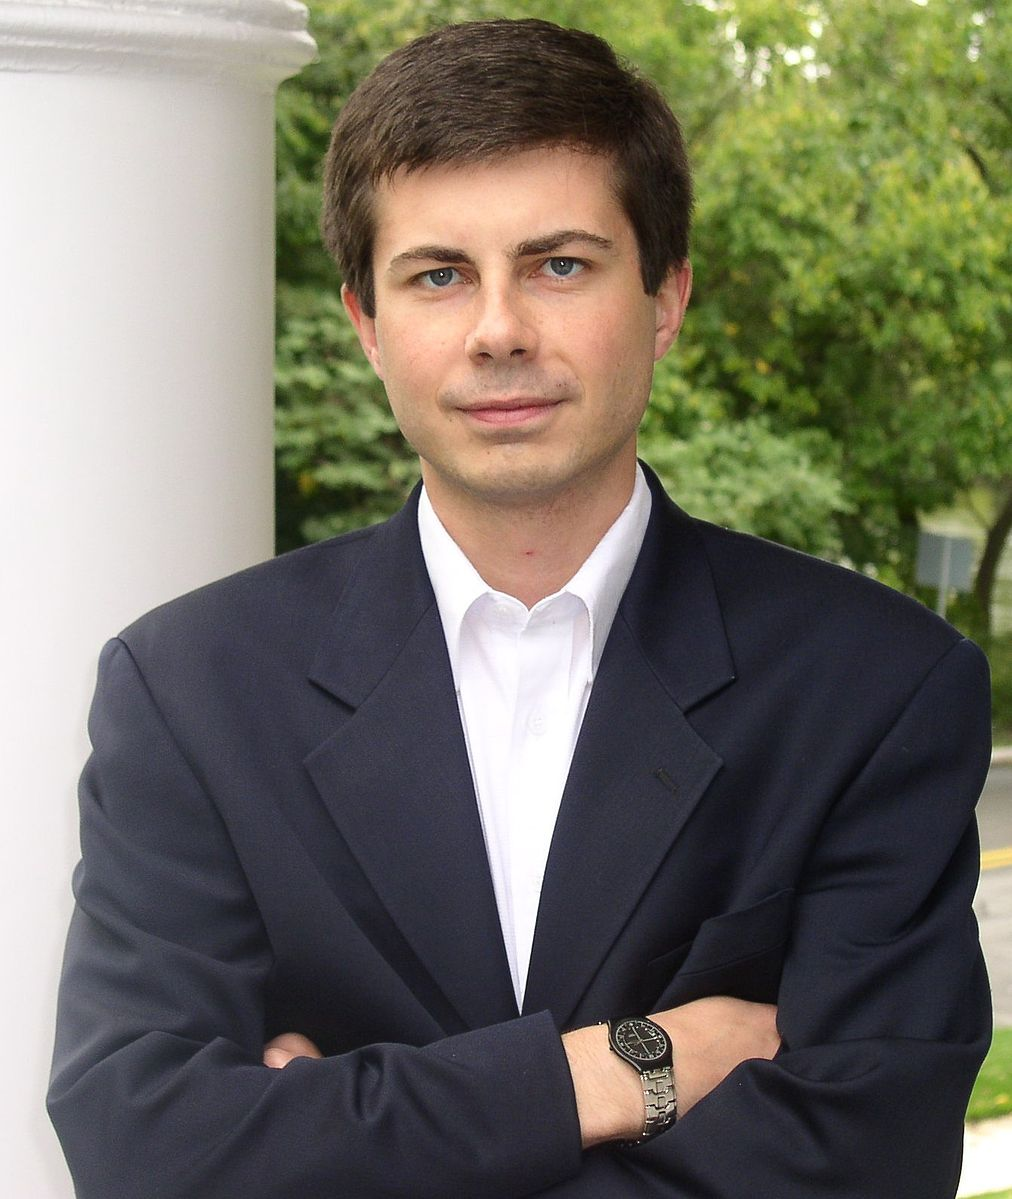 Mayor Pete Buttigieg as seen on his campaign website.